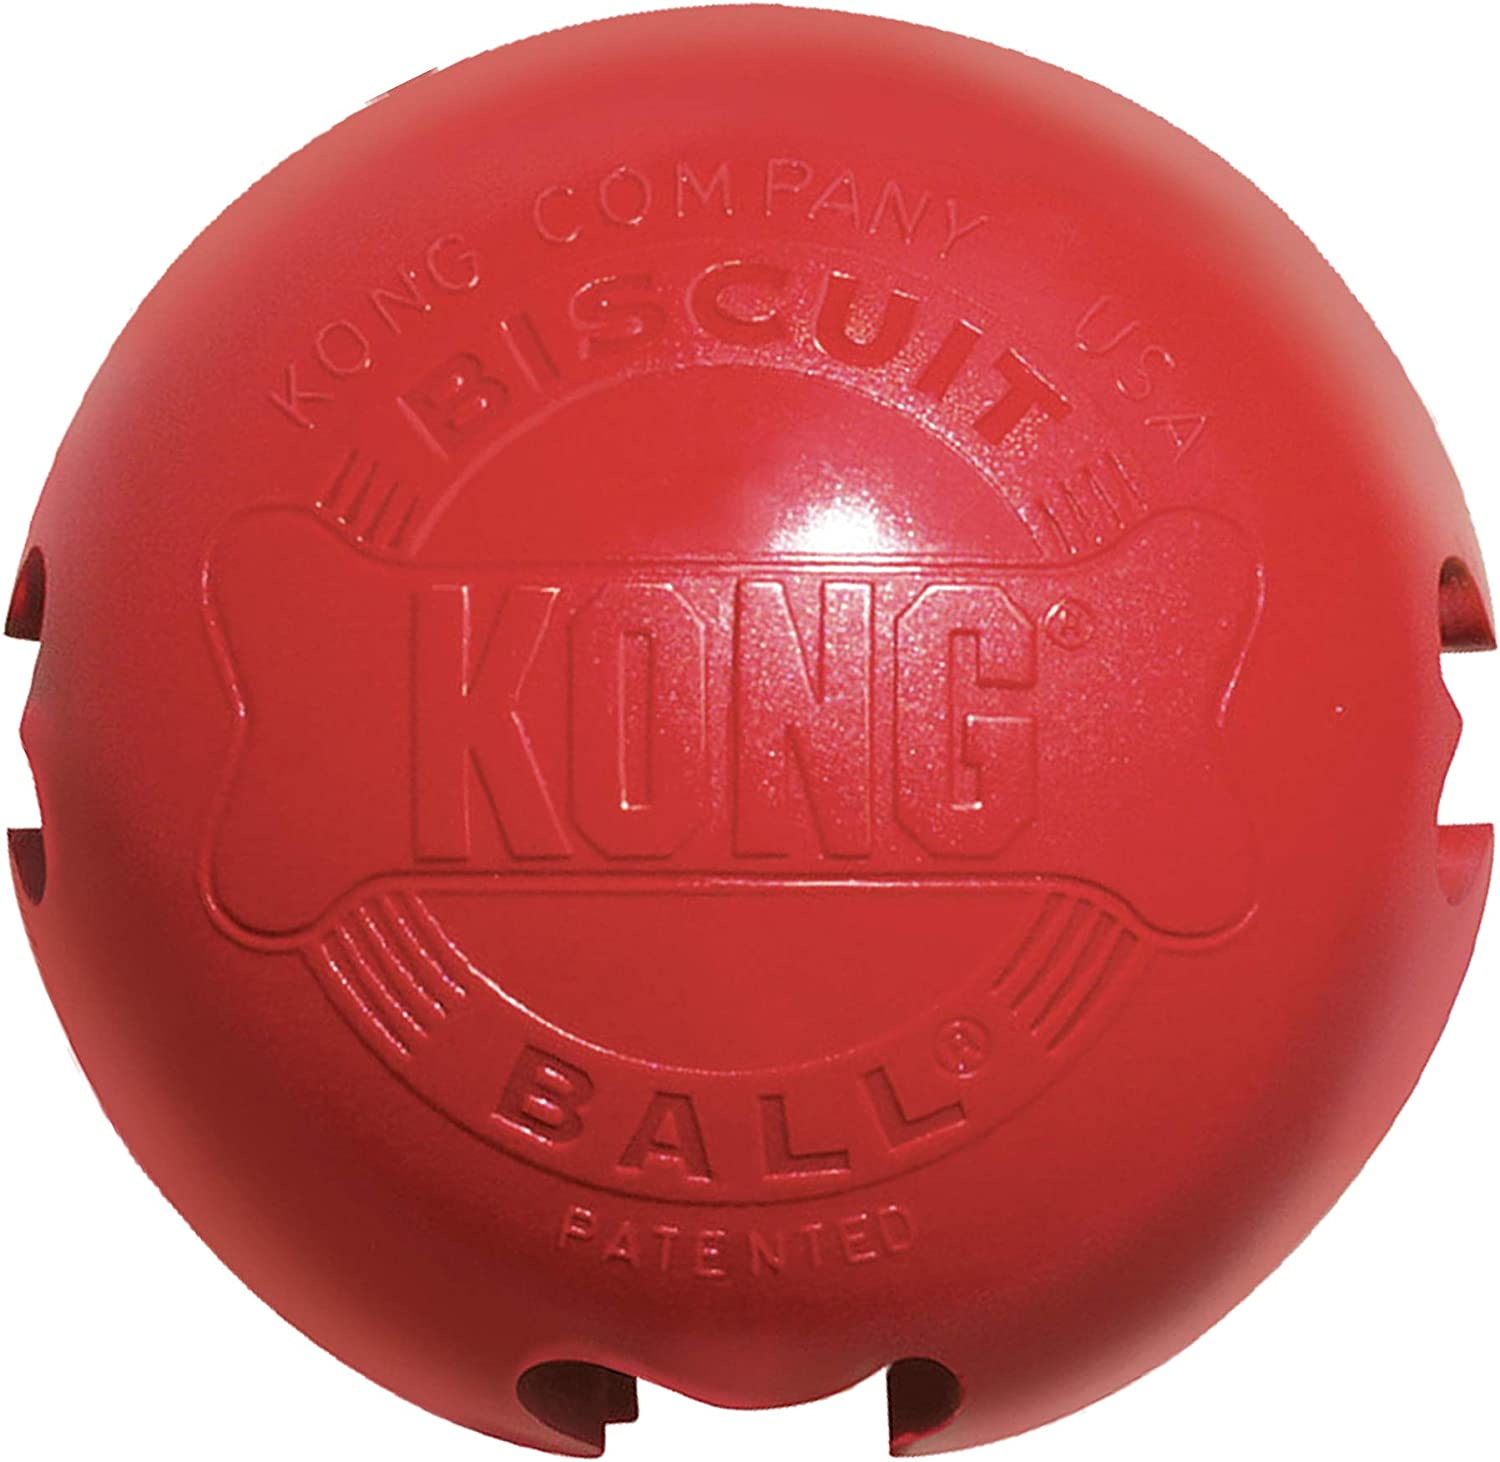 KONG - Biscuit Ball - Durable Rubber, Treat Dispensing Toy - for Large Dogs